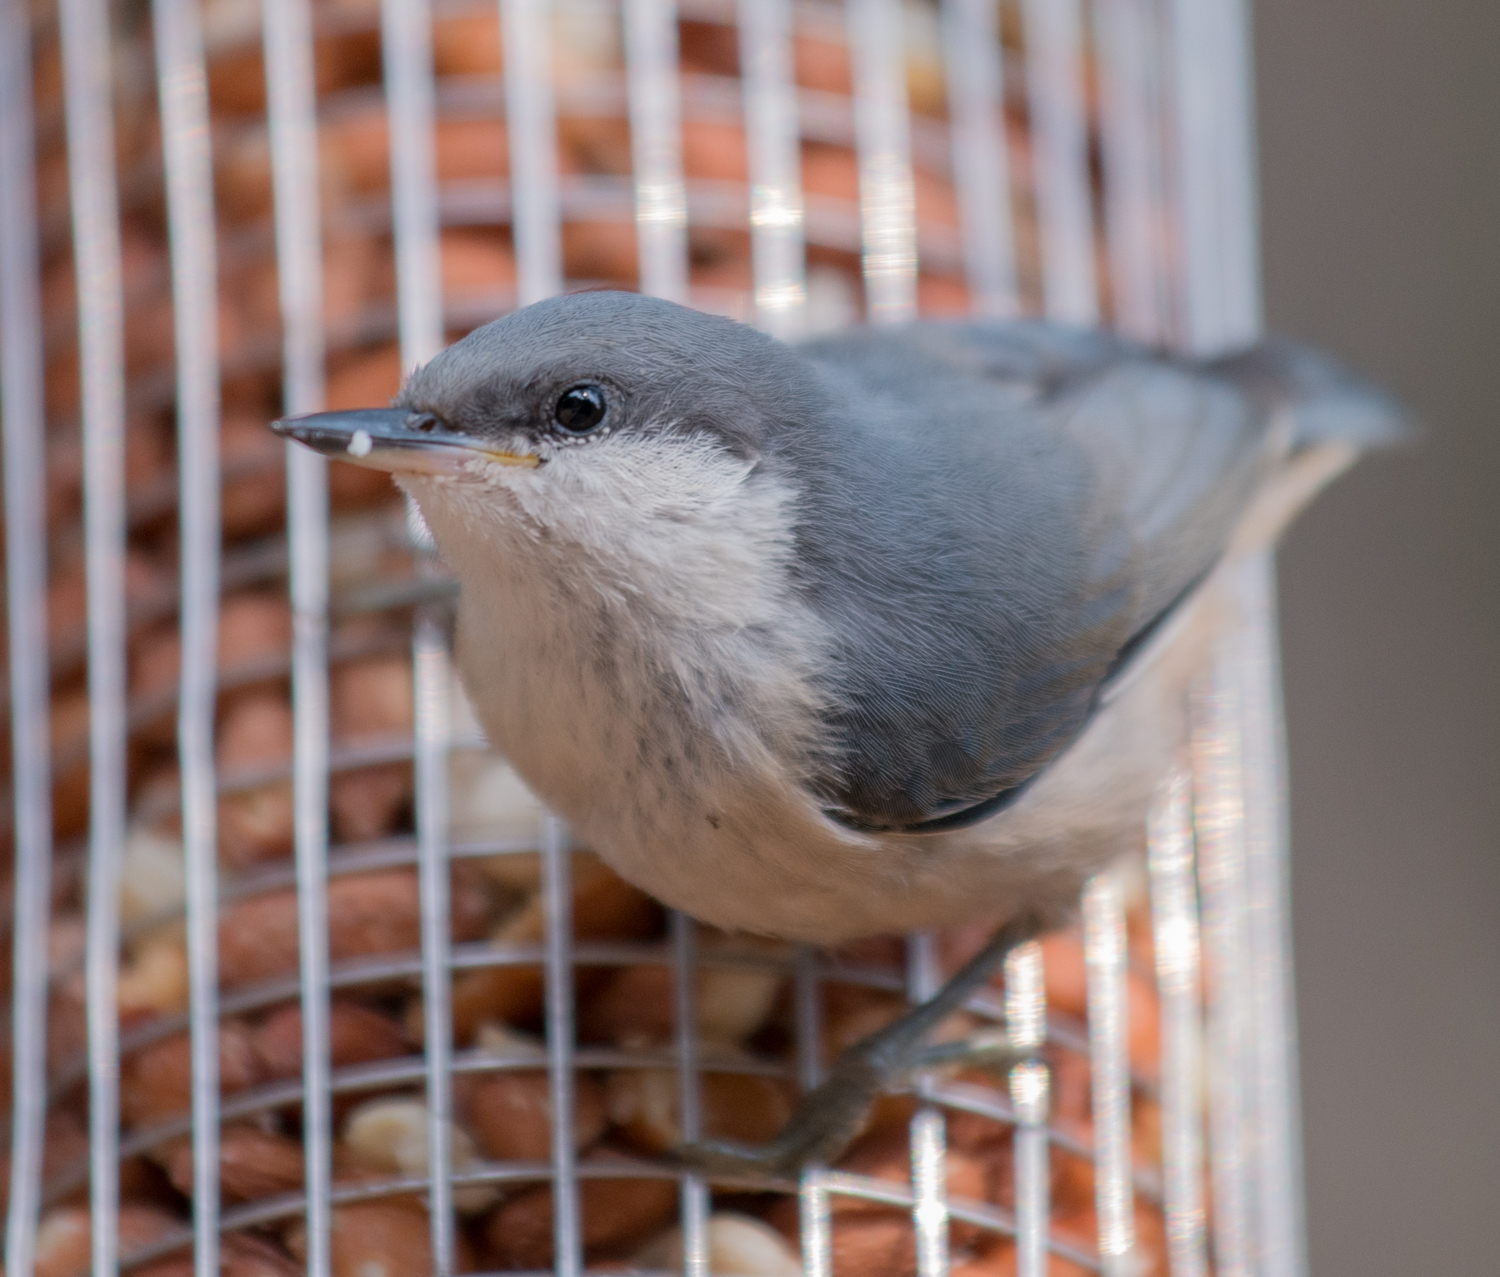 Photo of the Week 5:  Pygmy Nuthatch, immature (Sitta pygmaea)   EQ: D800 f/4 70-200mm Taken: 8-5-14 17:45  Setting: 200mm, f/4, 1/800s, ISO800  Condition: Sunny in shade of an oak